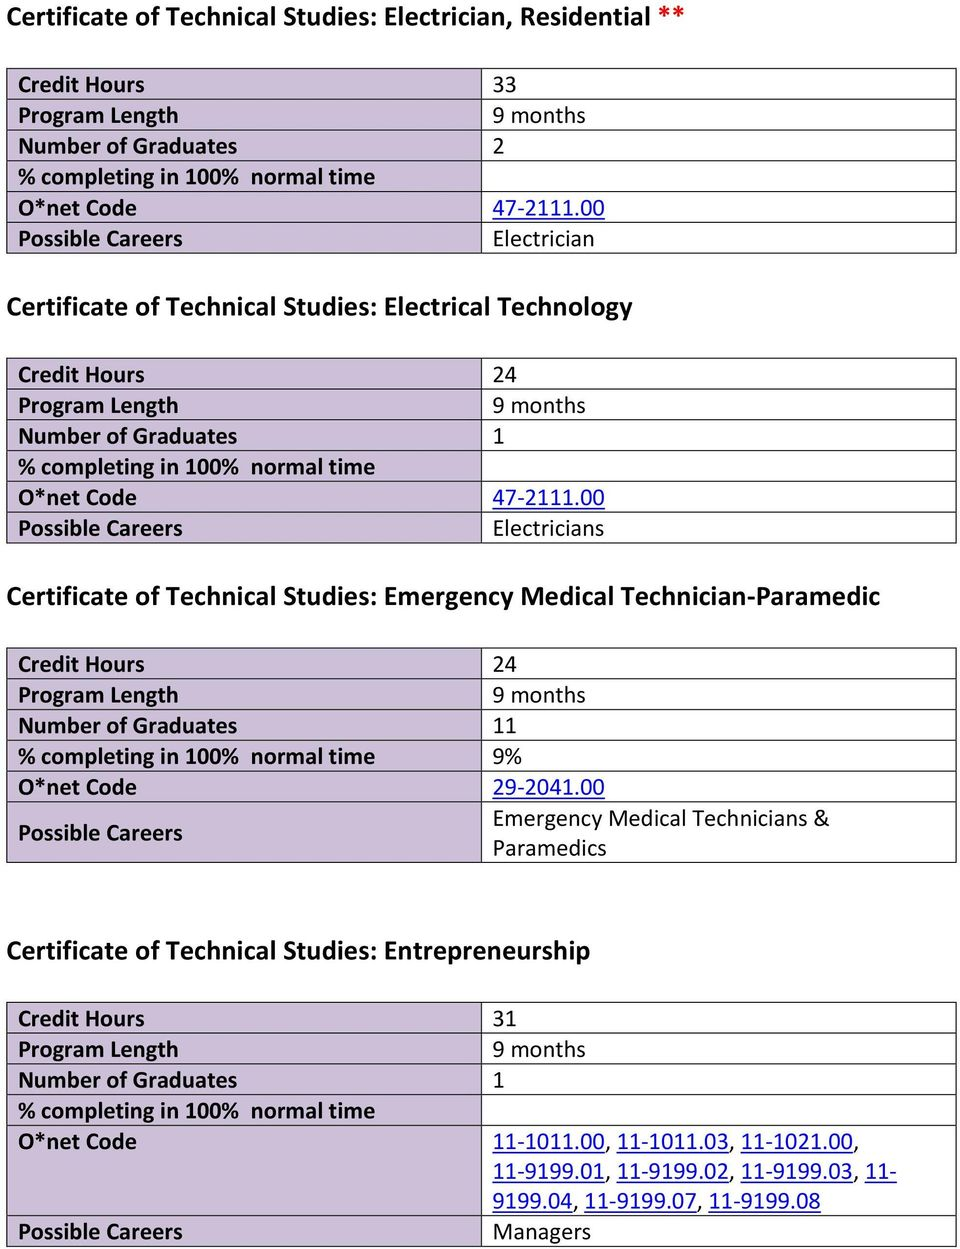 00 Electricians Certificate of Technical Studies: Emergency Medical Technician Paramedic Credit Hours 24 11 9% O*net Code 29 2041.